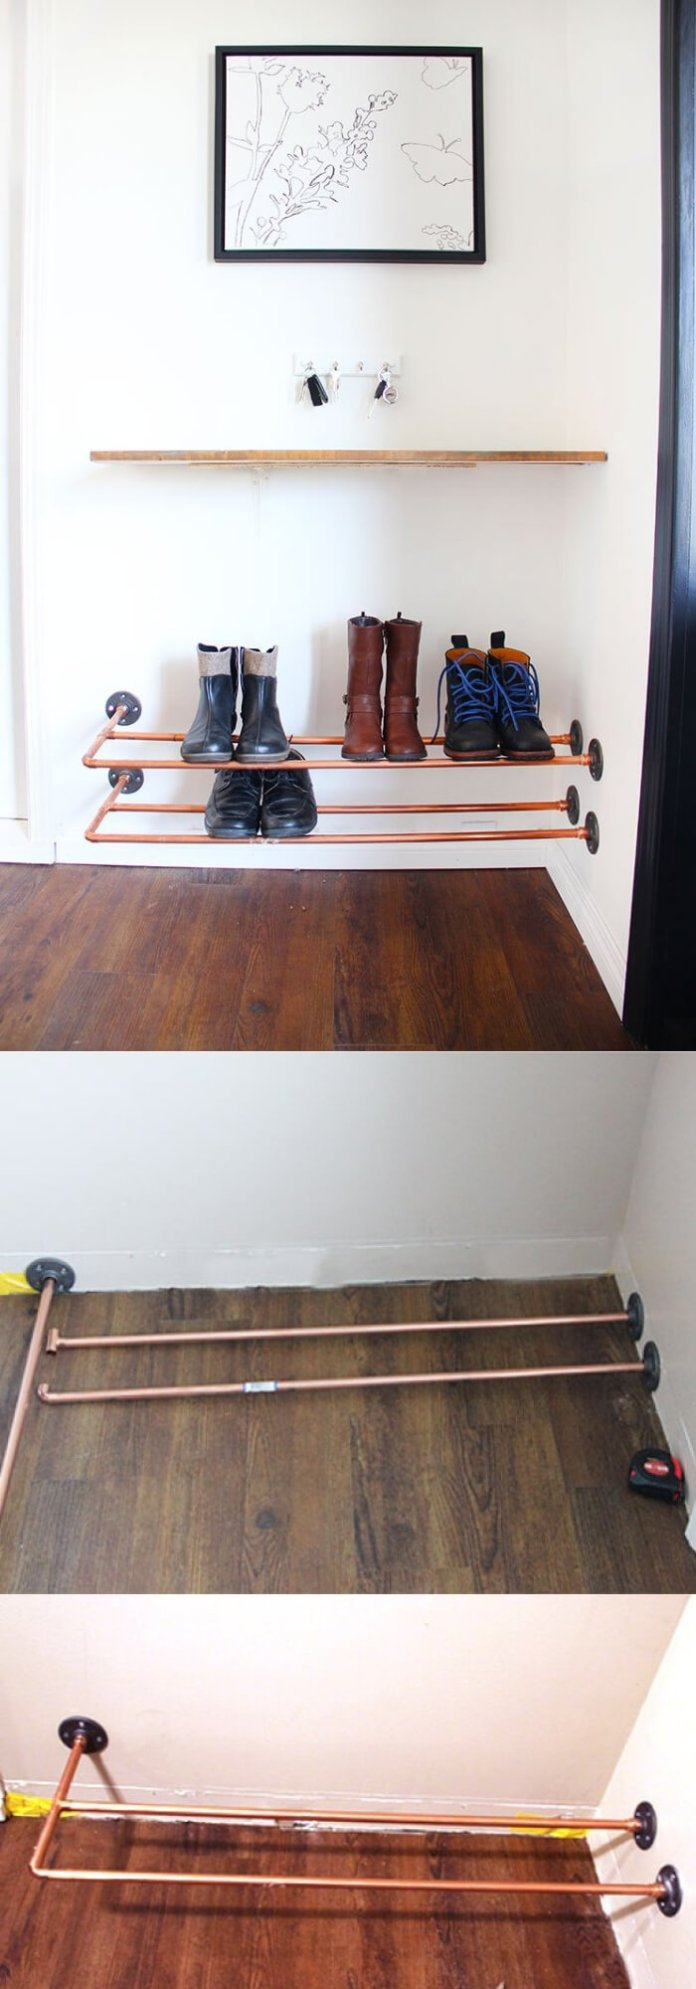 Copper Shoe Rack | Smart Shoe Storage Ideas & Designs For Any Zoom Size